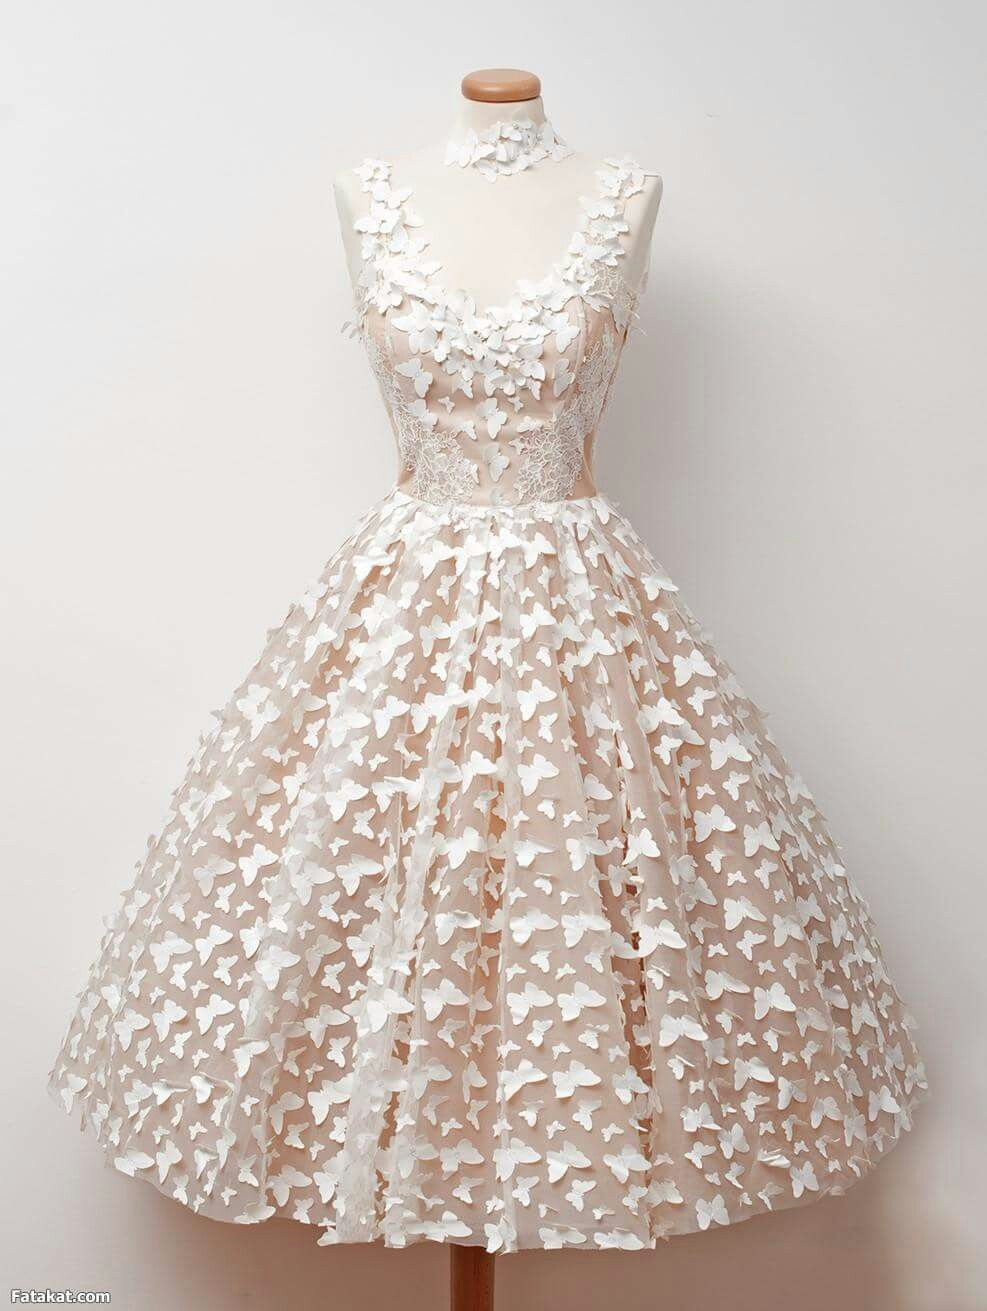 Best type of dress to wear to a wedding  Pin by Sharron Owens on Destry and Erica  Pinterest